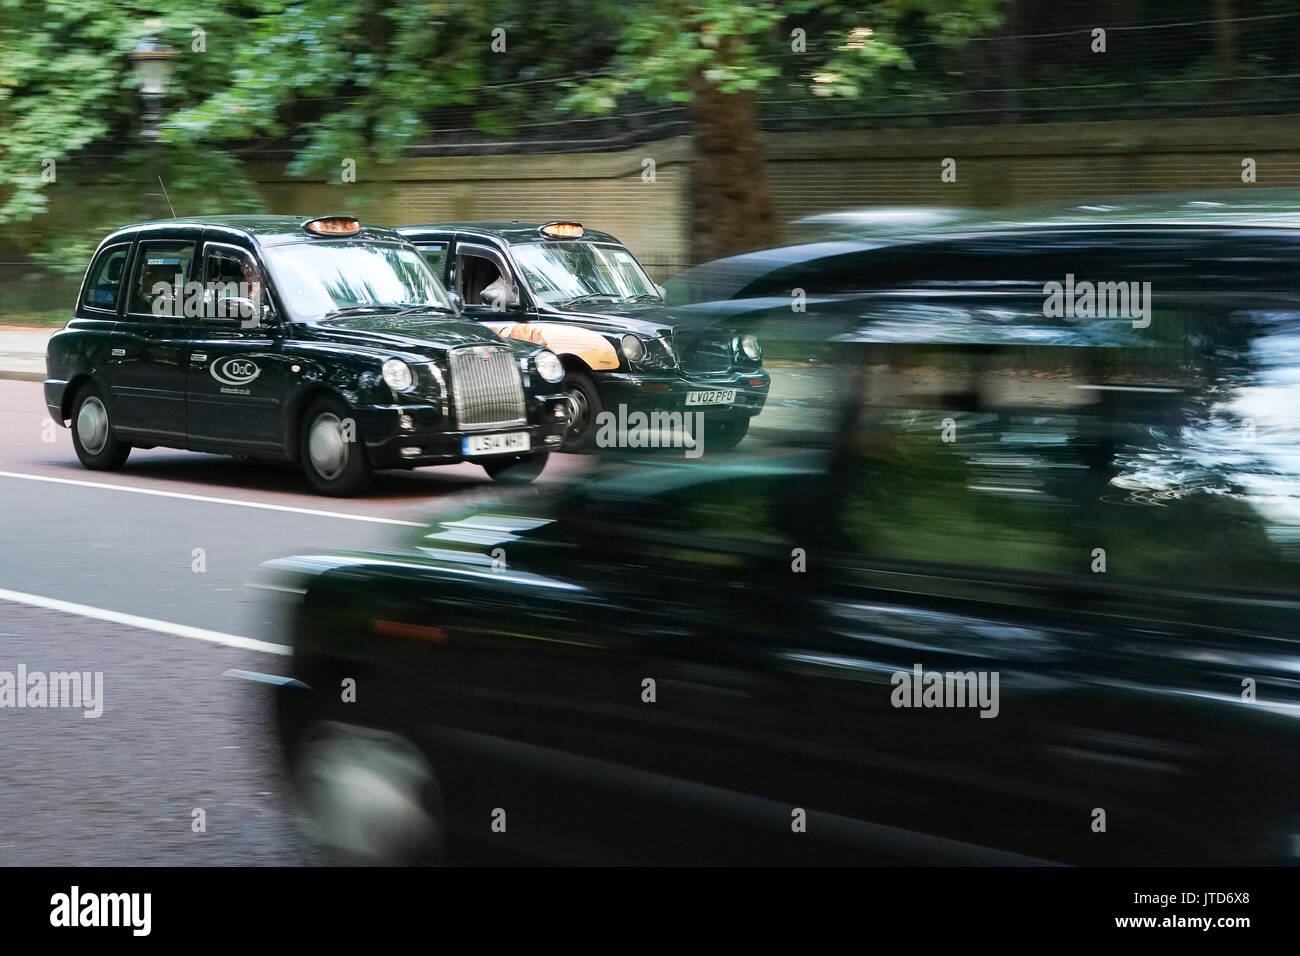 Views of traditional black cabs on Constitution Hill near Buckingham Palace in London, UK. Photo date: Thursday, Stock Photo